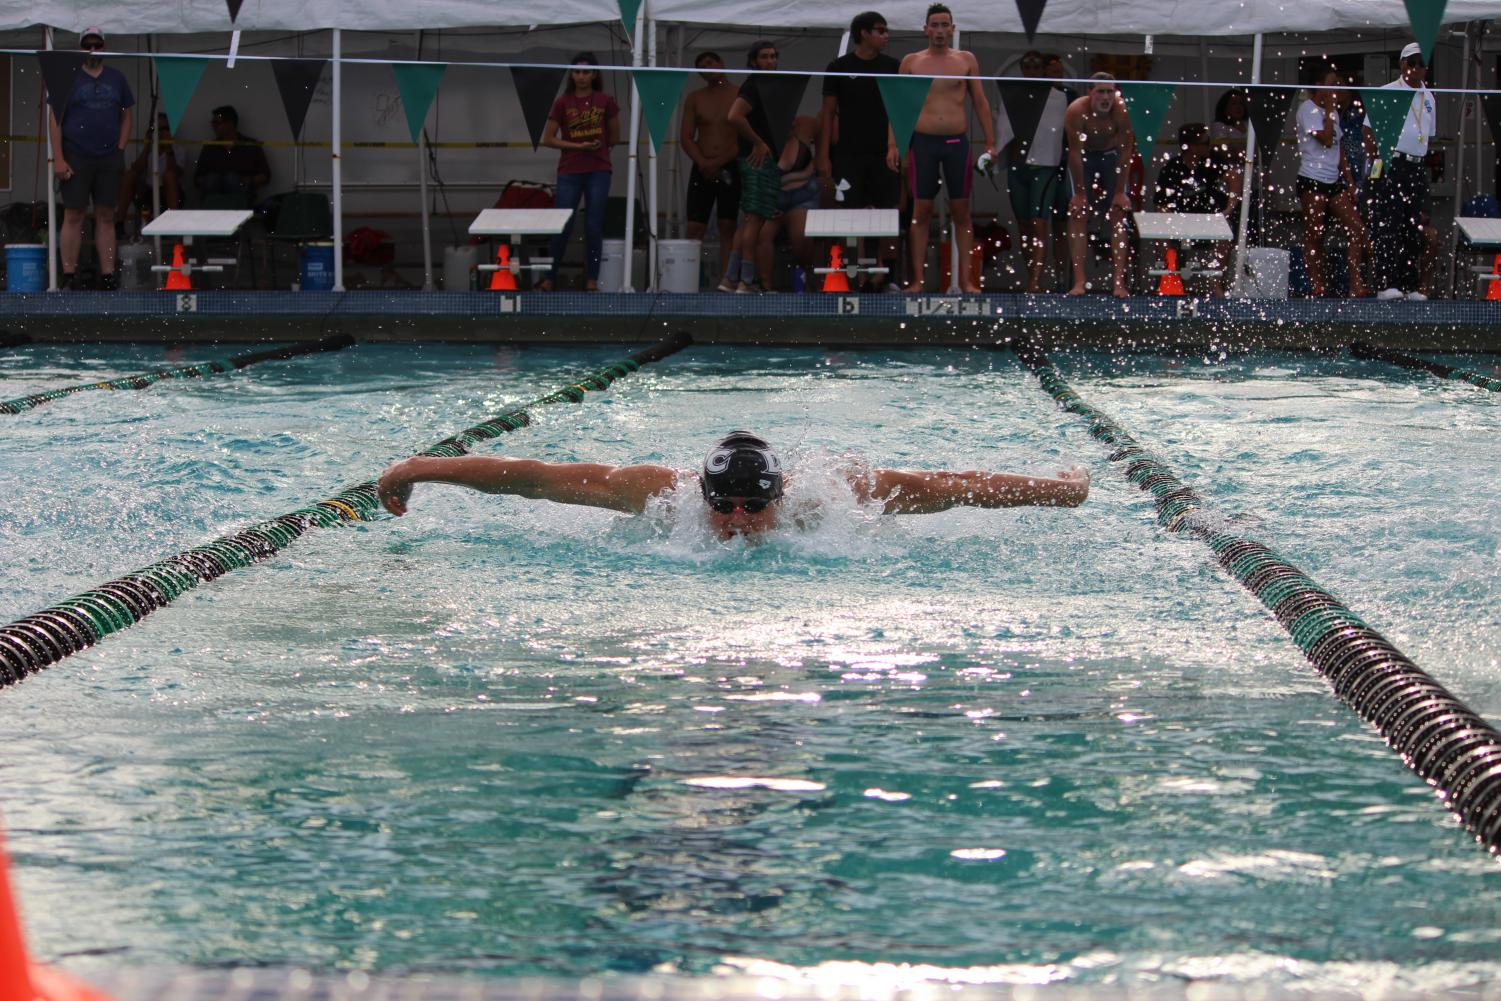 A DVC swimmer races in breaststroke during the Big 8 Championships at DVC, which took place from April 18 through April 20. (Samantha Laurey, Inquirer)